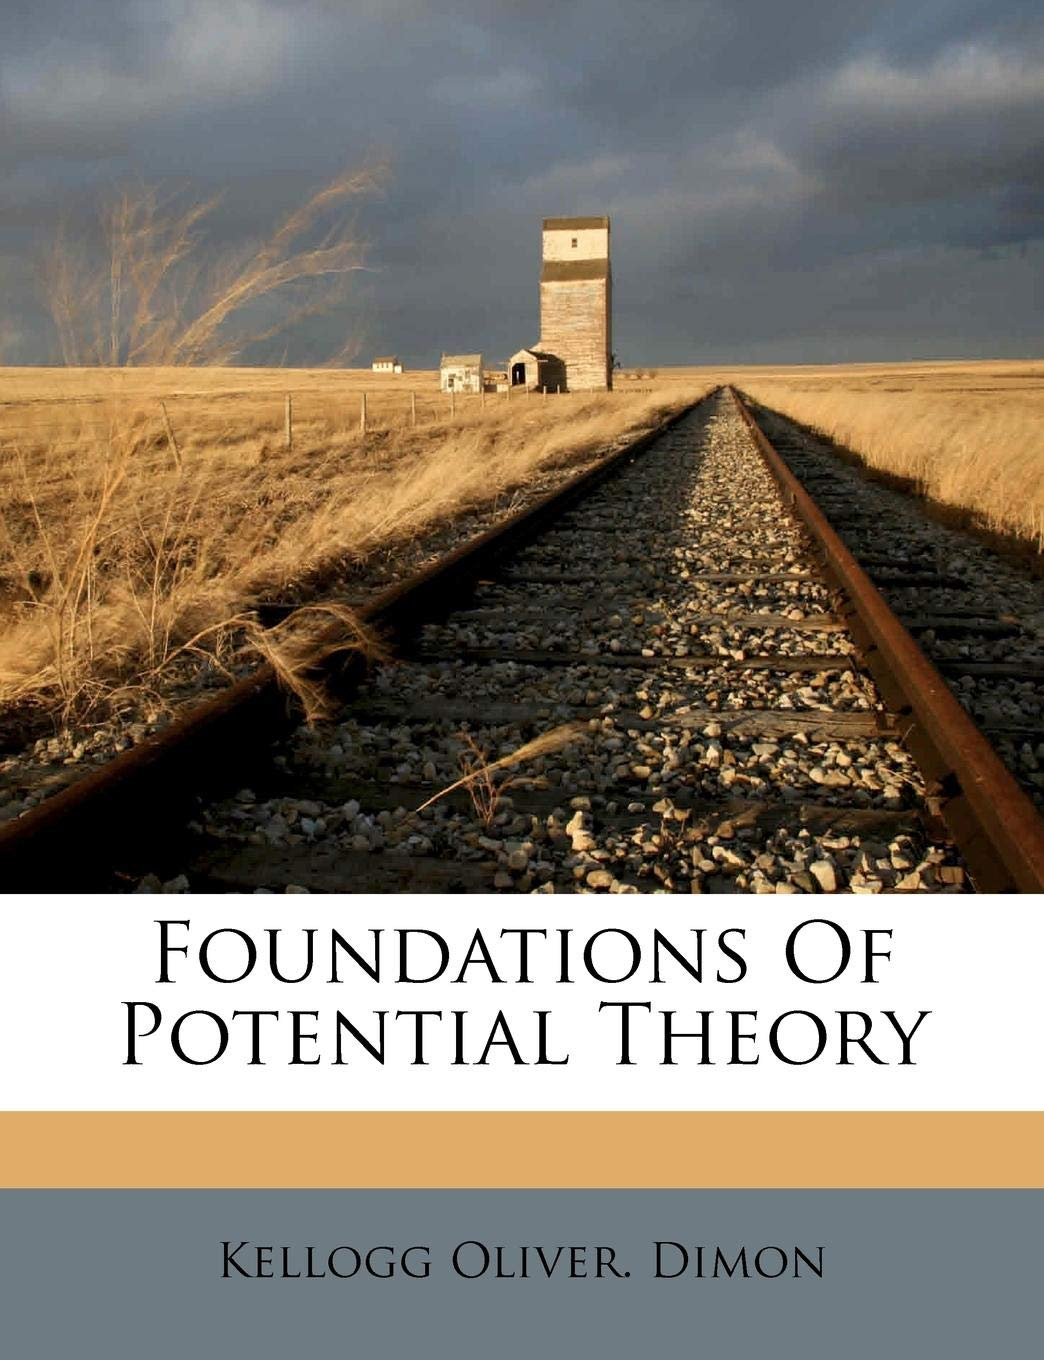 Foundations of Potential Theory